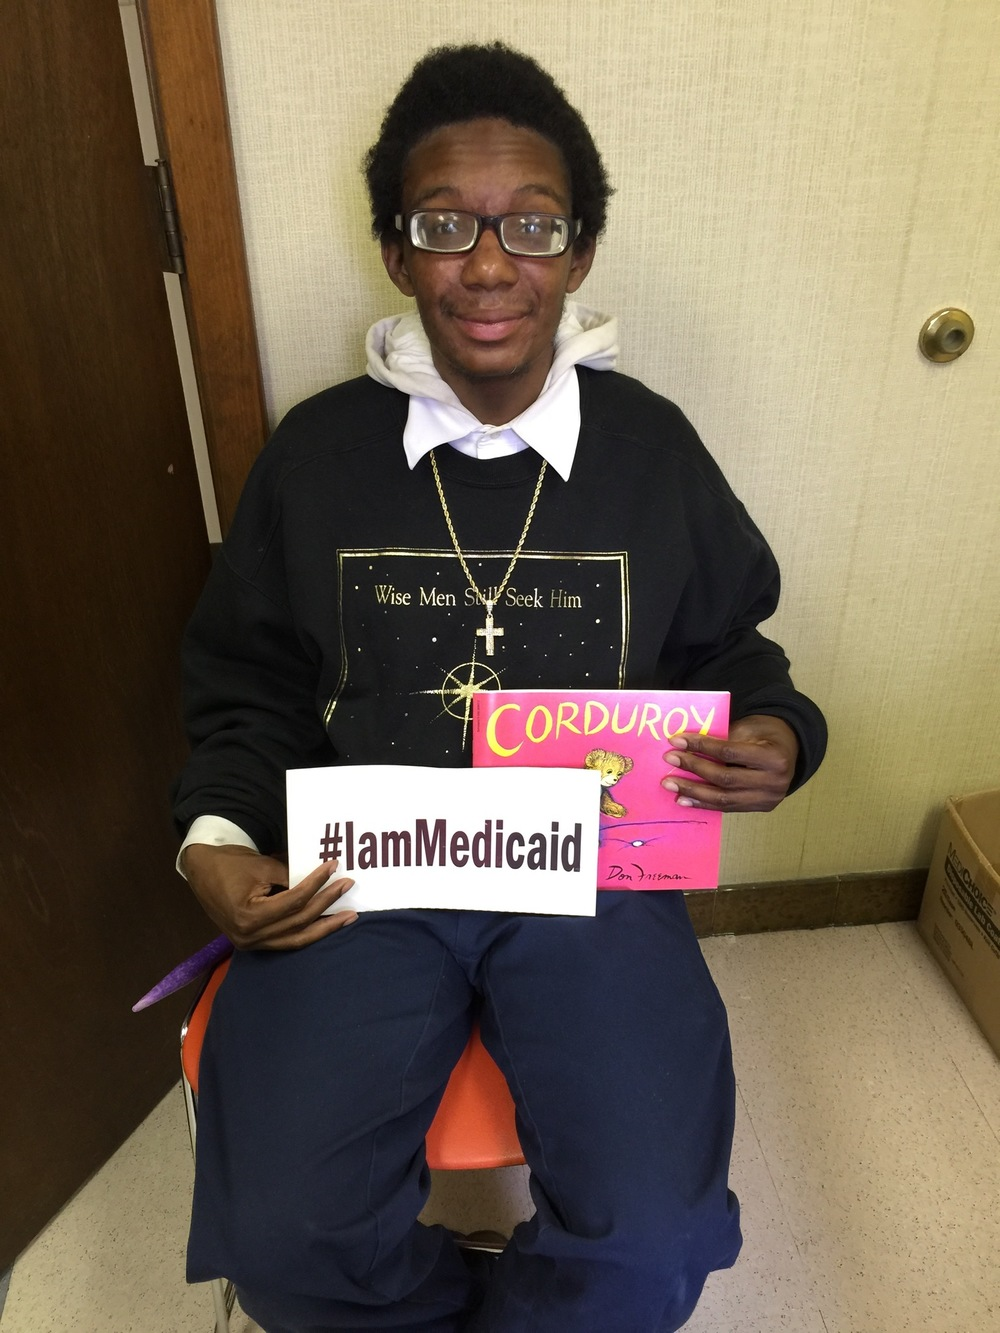 I have autism. I like to read to my nephew age 2. Blue Cross and Medicaid help me so I can do that. Thanks! ‪#‎IamMedicaid